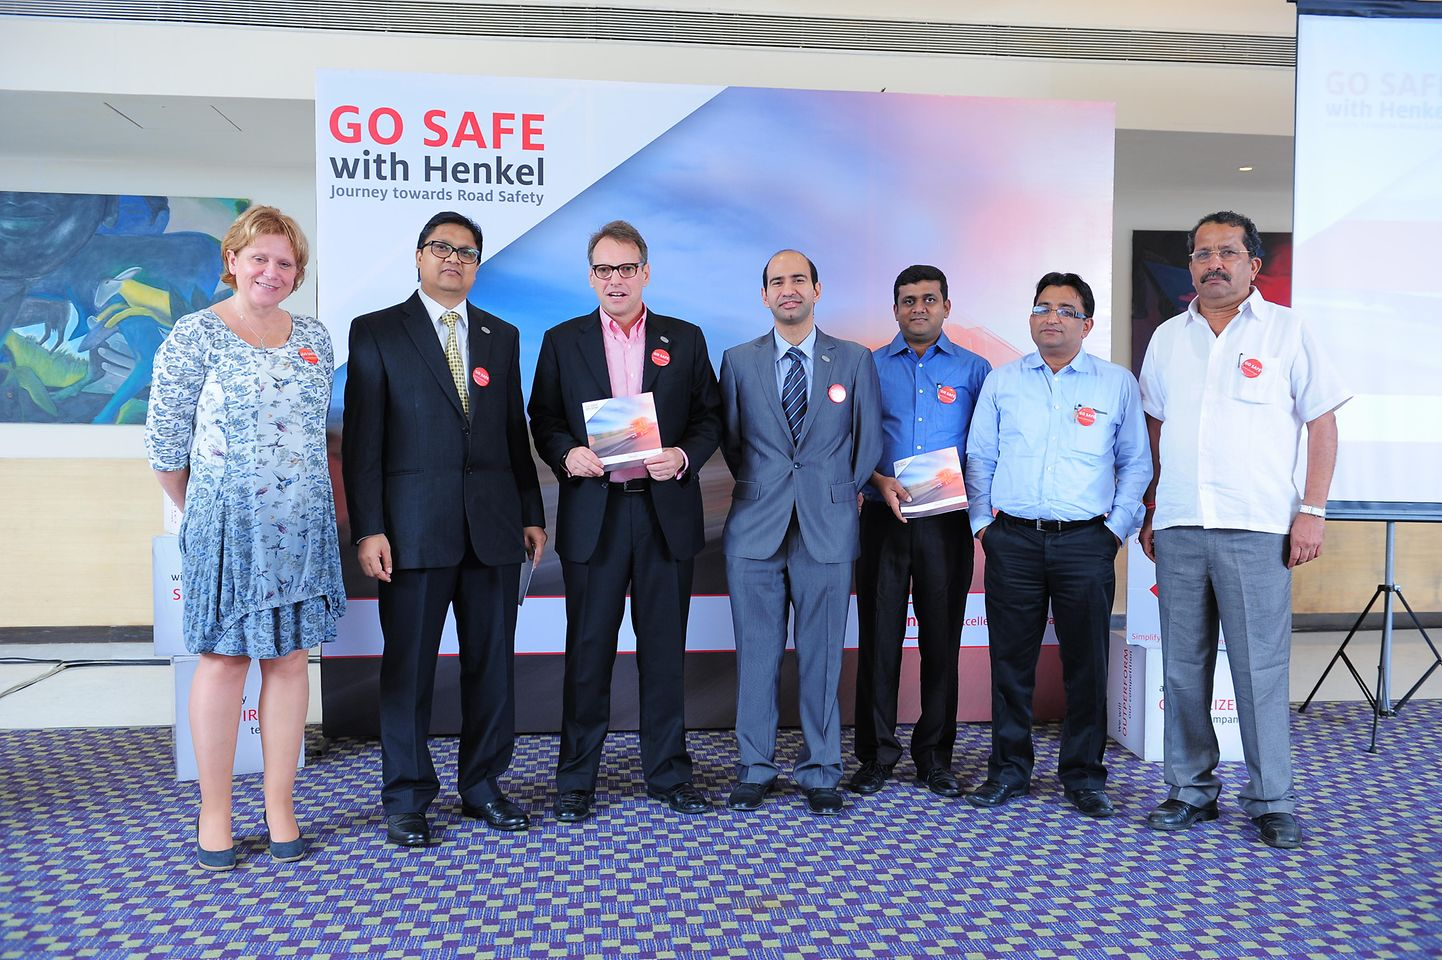 Go Safe with Henkel campaign